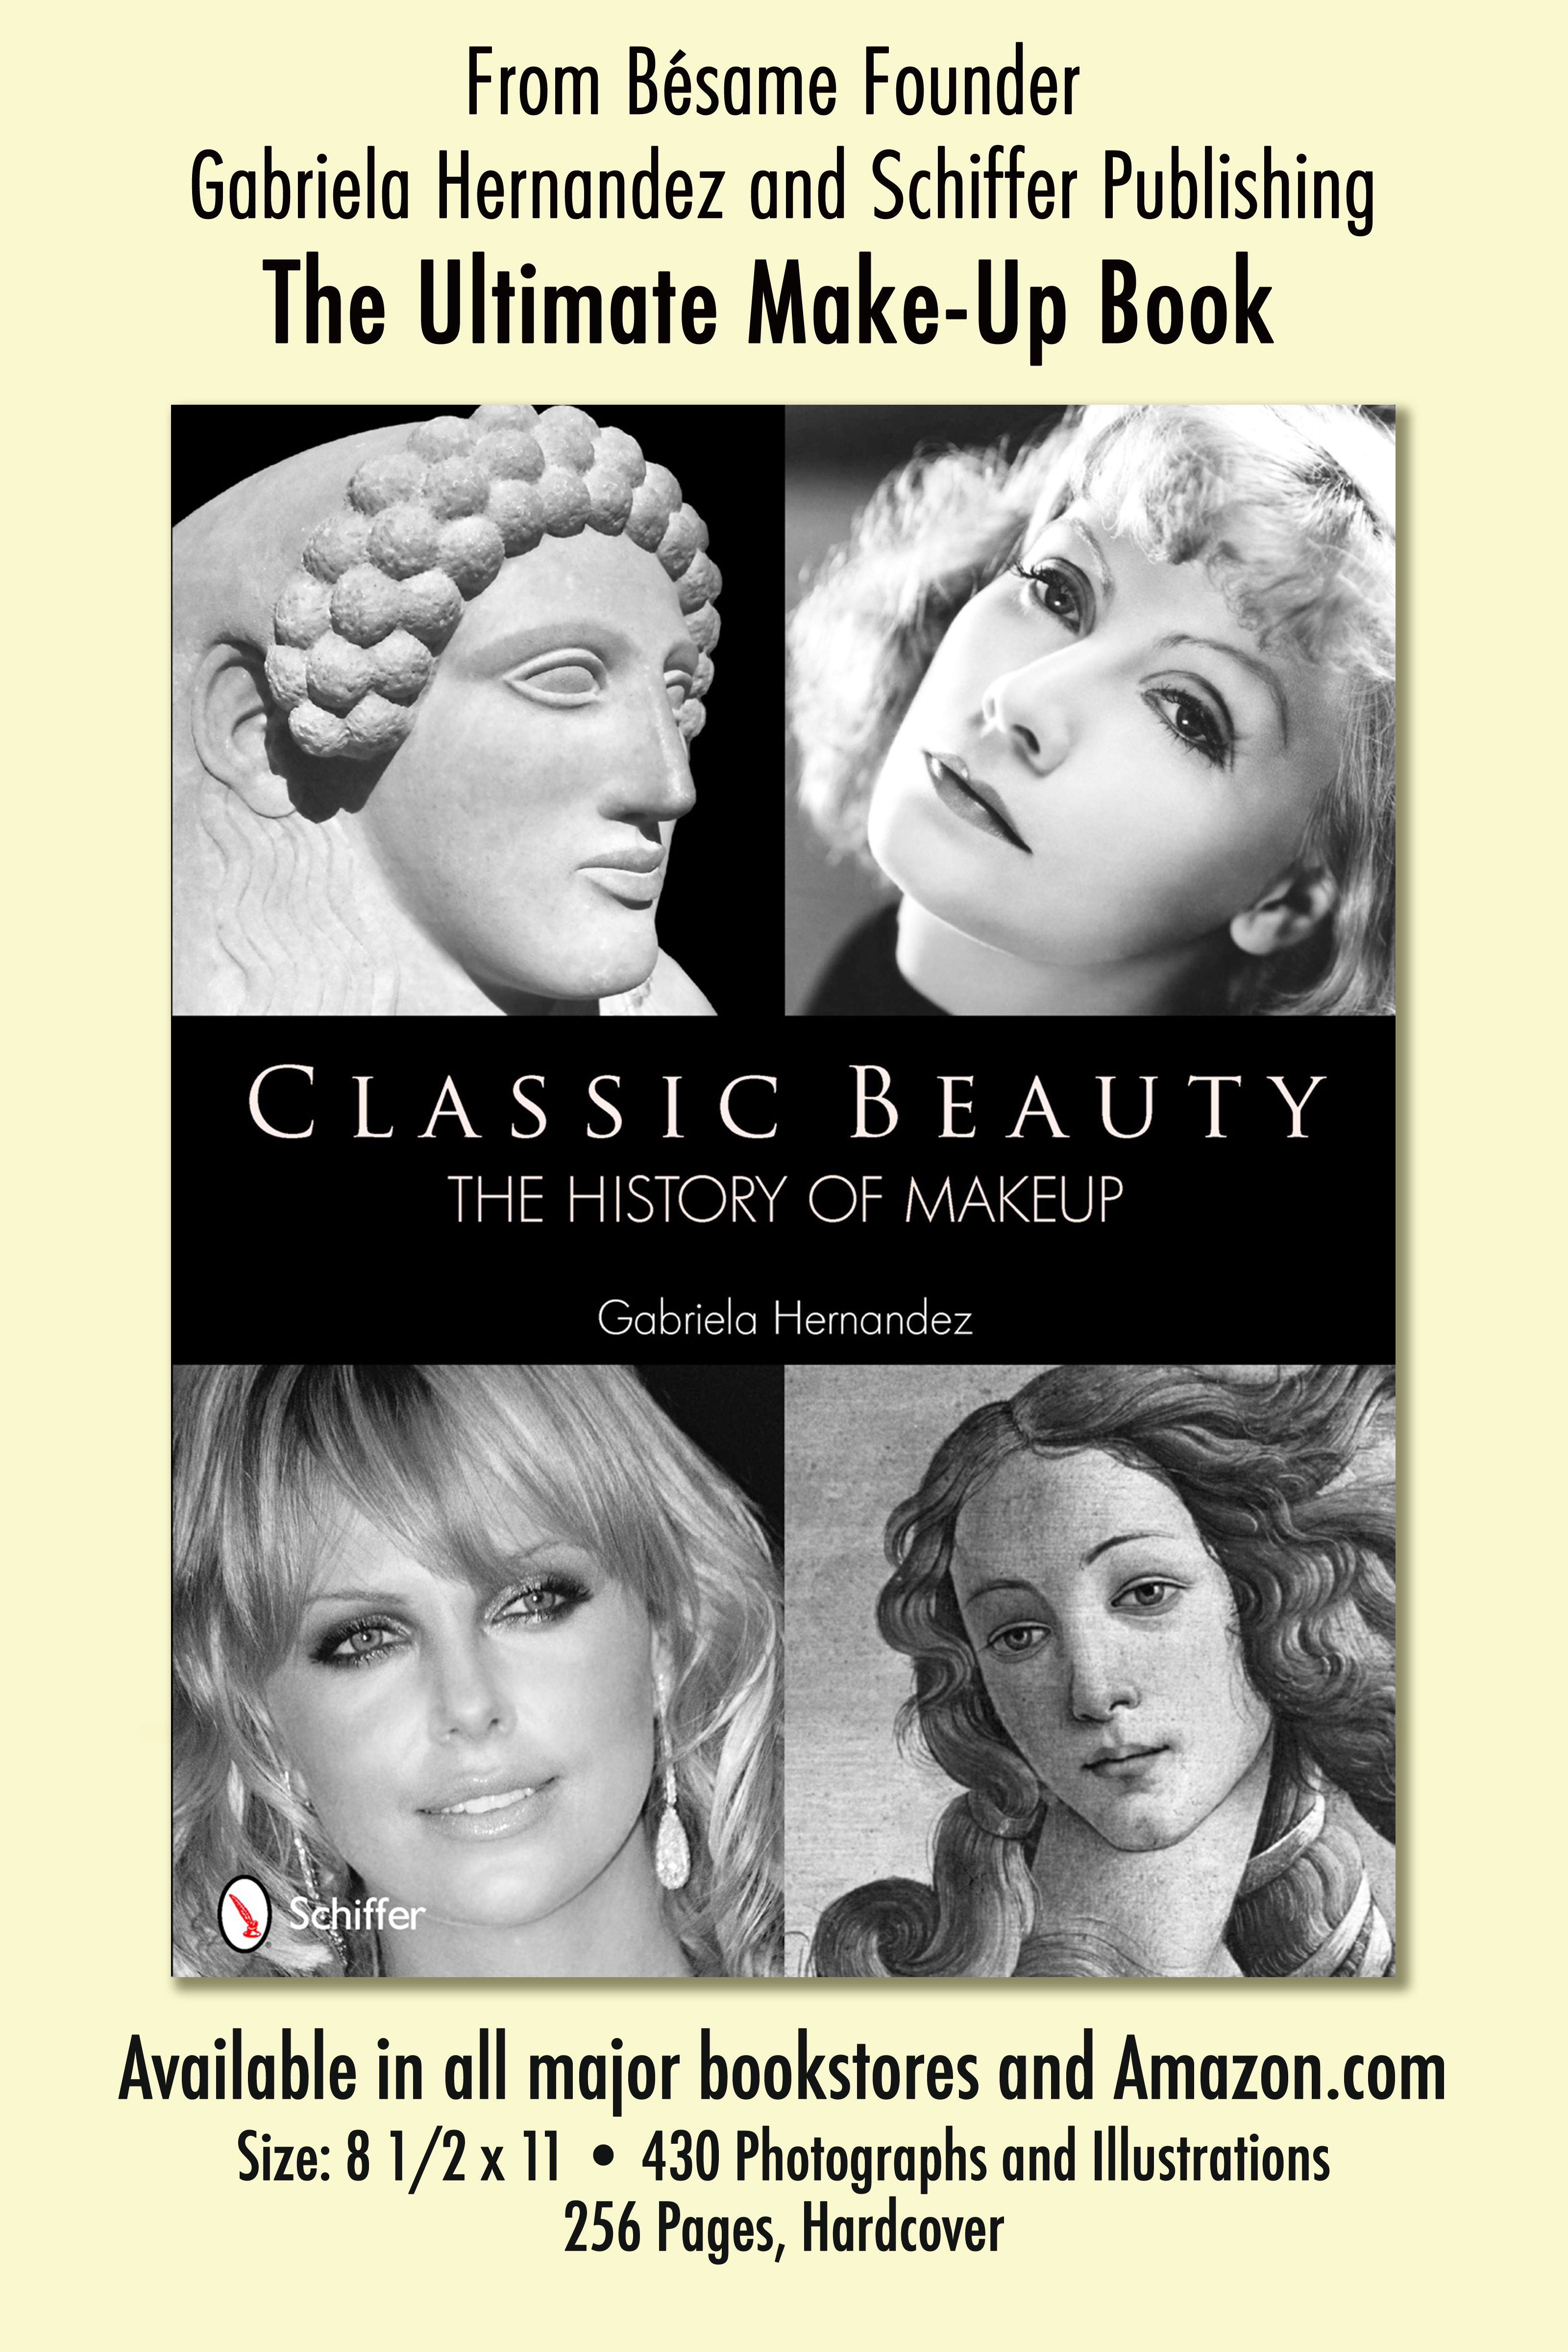 Curious about the history of makeup? Pick up a copy